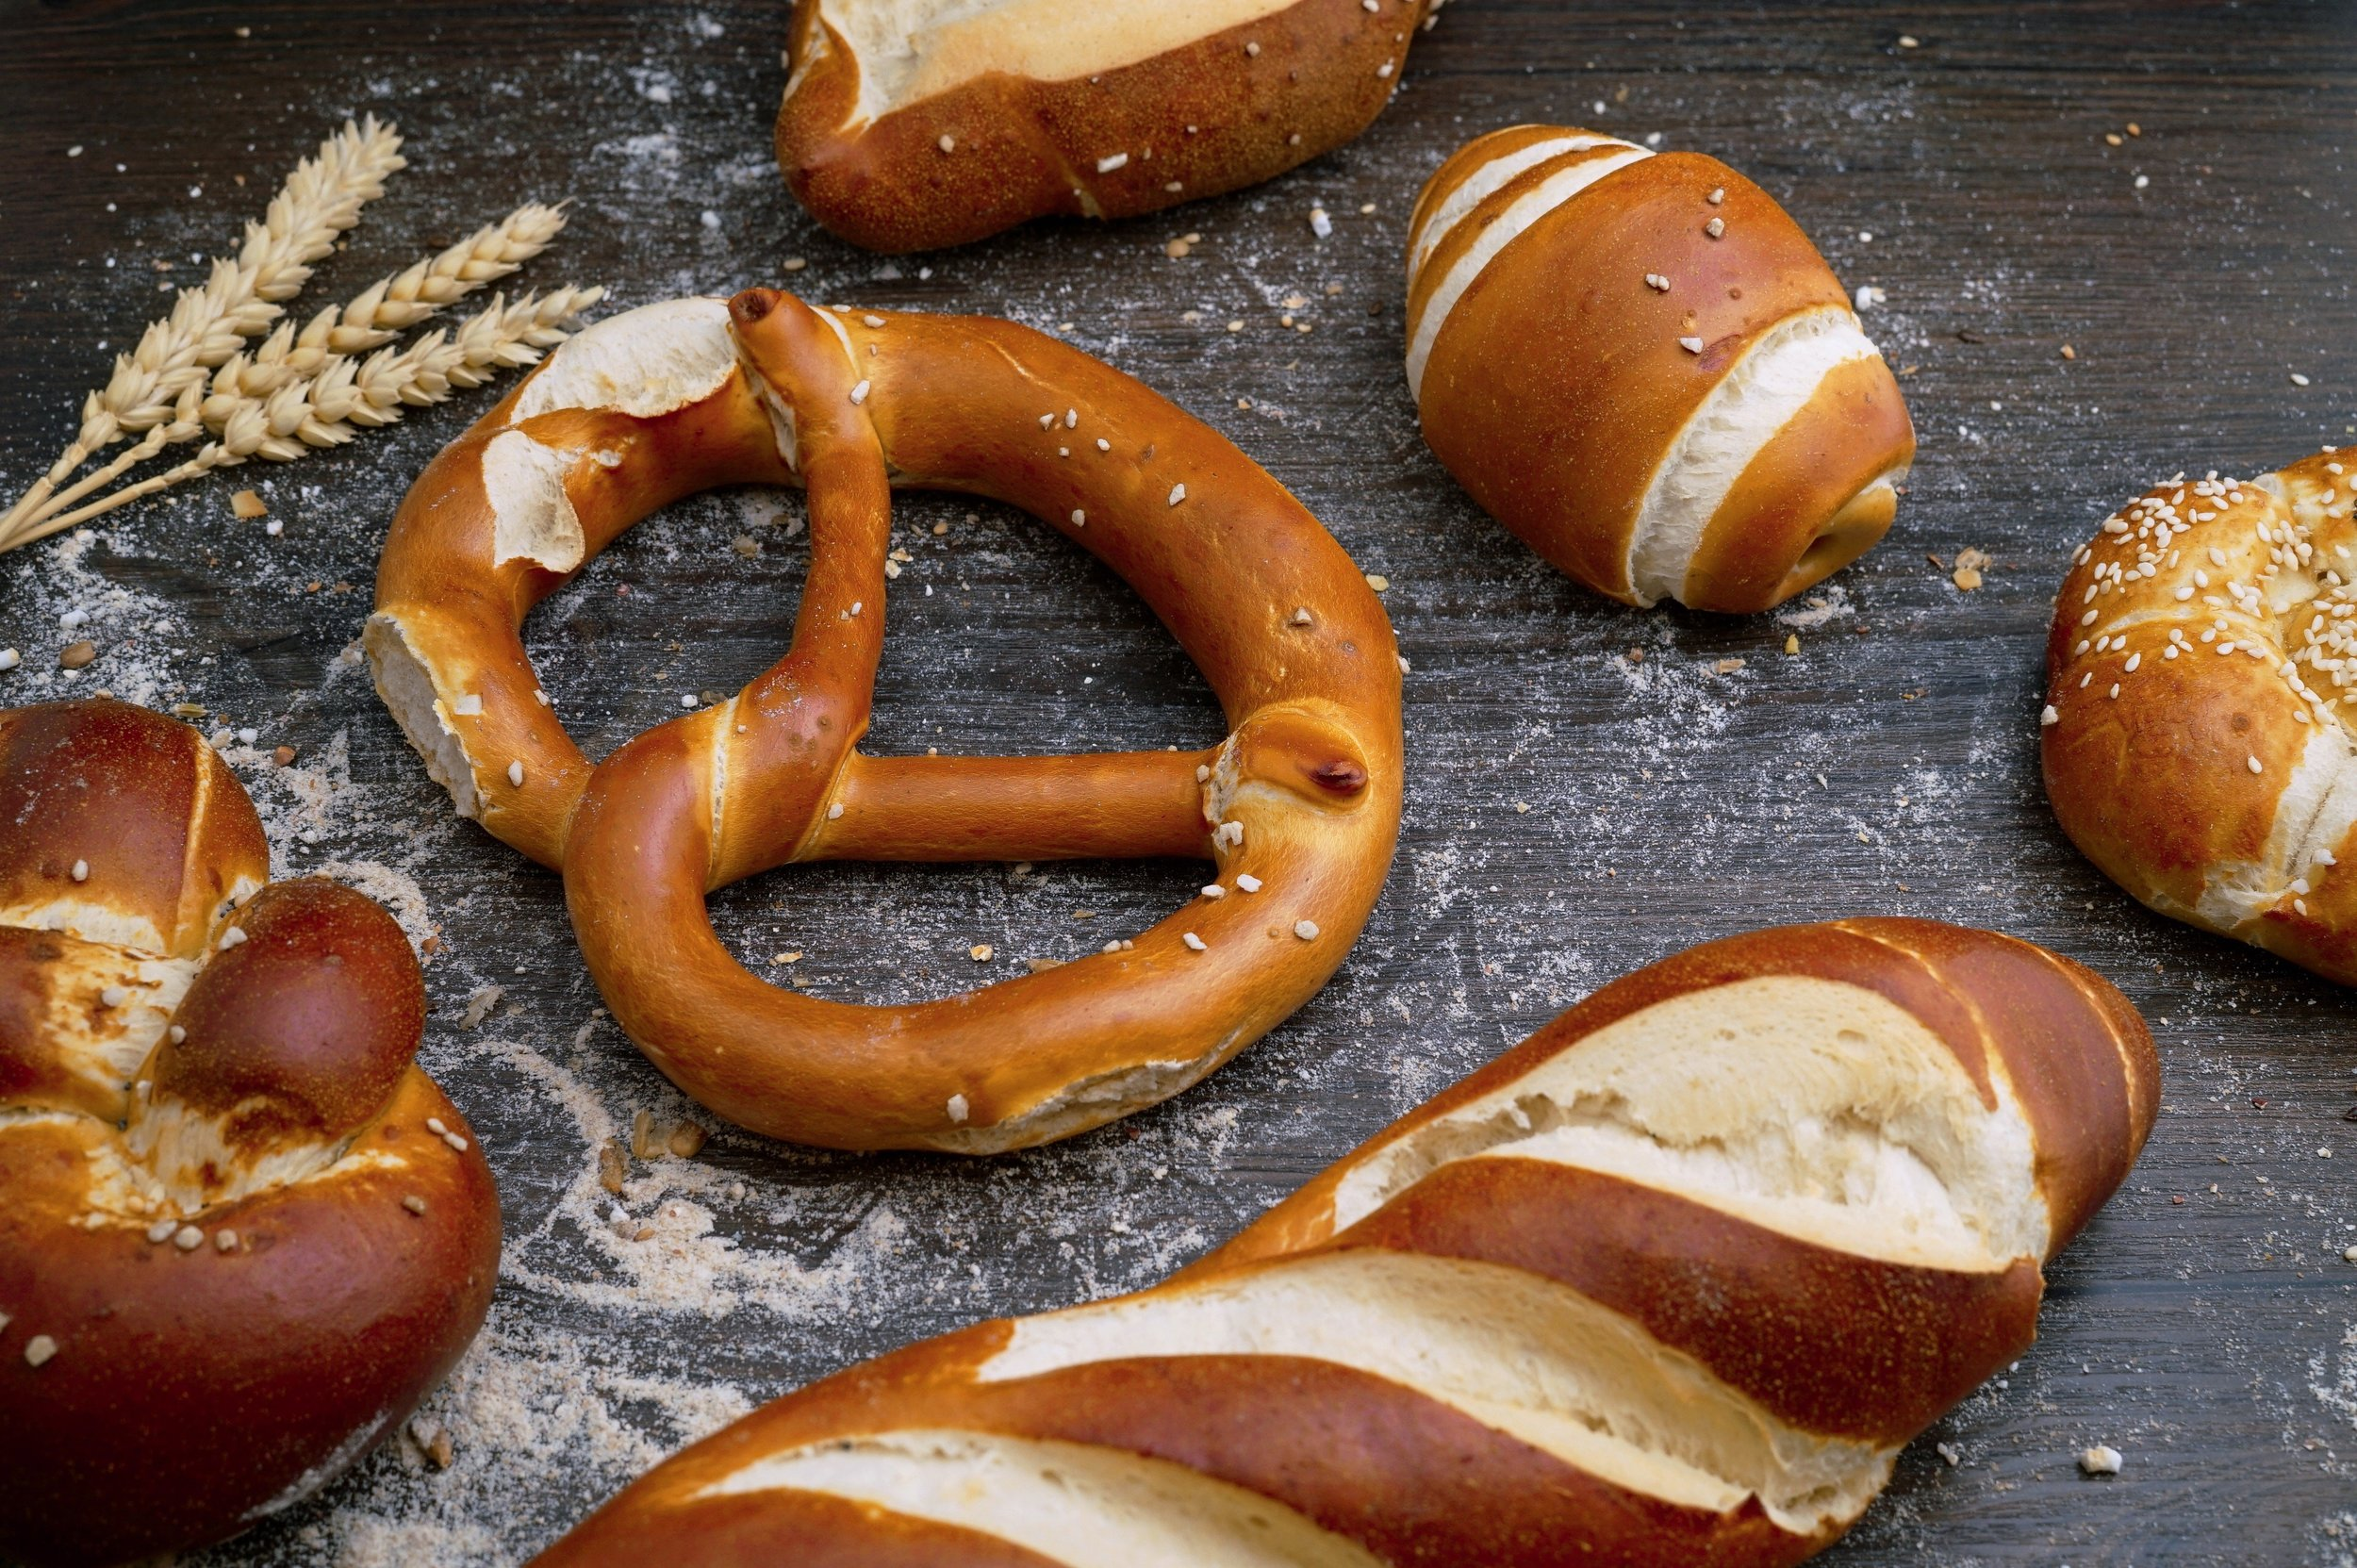 What's the science behind these pretzels? -